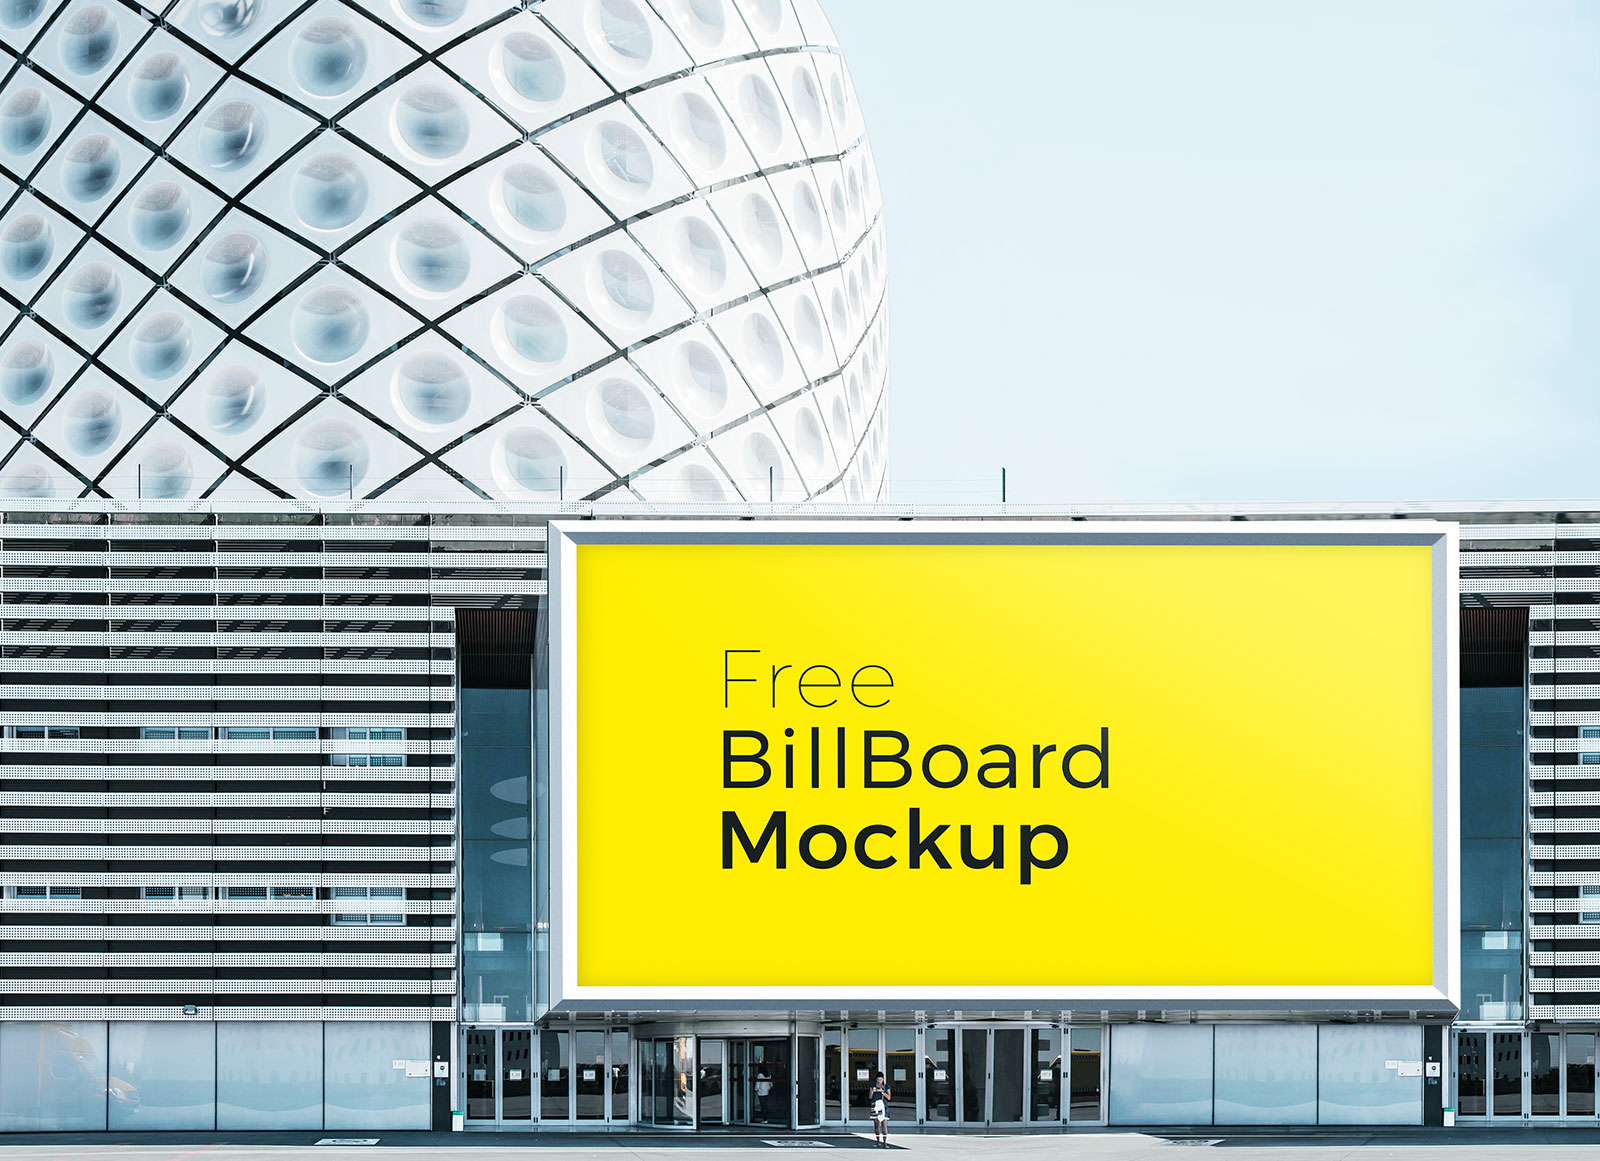 Free Outdoor Advertising Wall Mounted Billboard Mockup Set